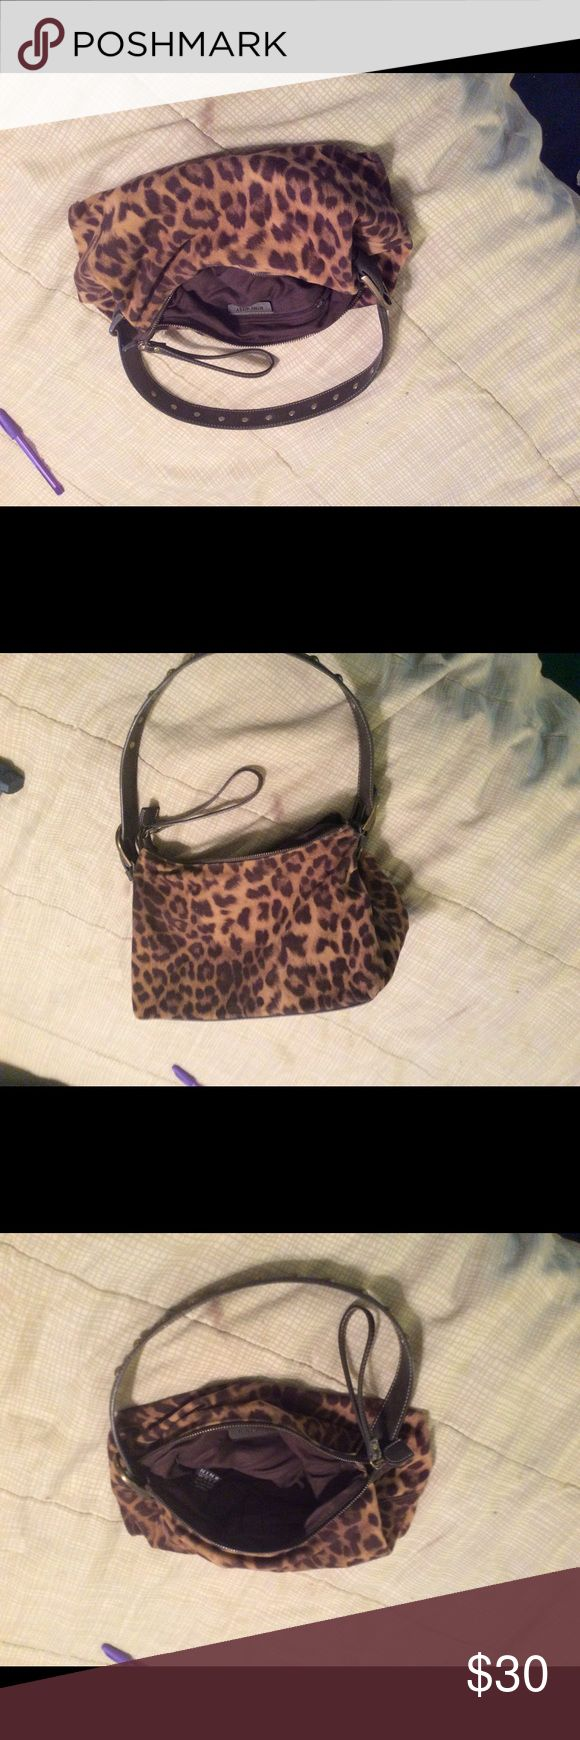 Leapord print Nine West purse Leapord print Nine West purse, gently used, great condition. Nine West Bags Hobos